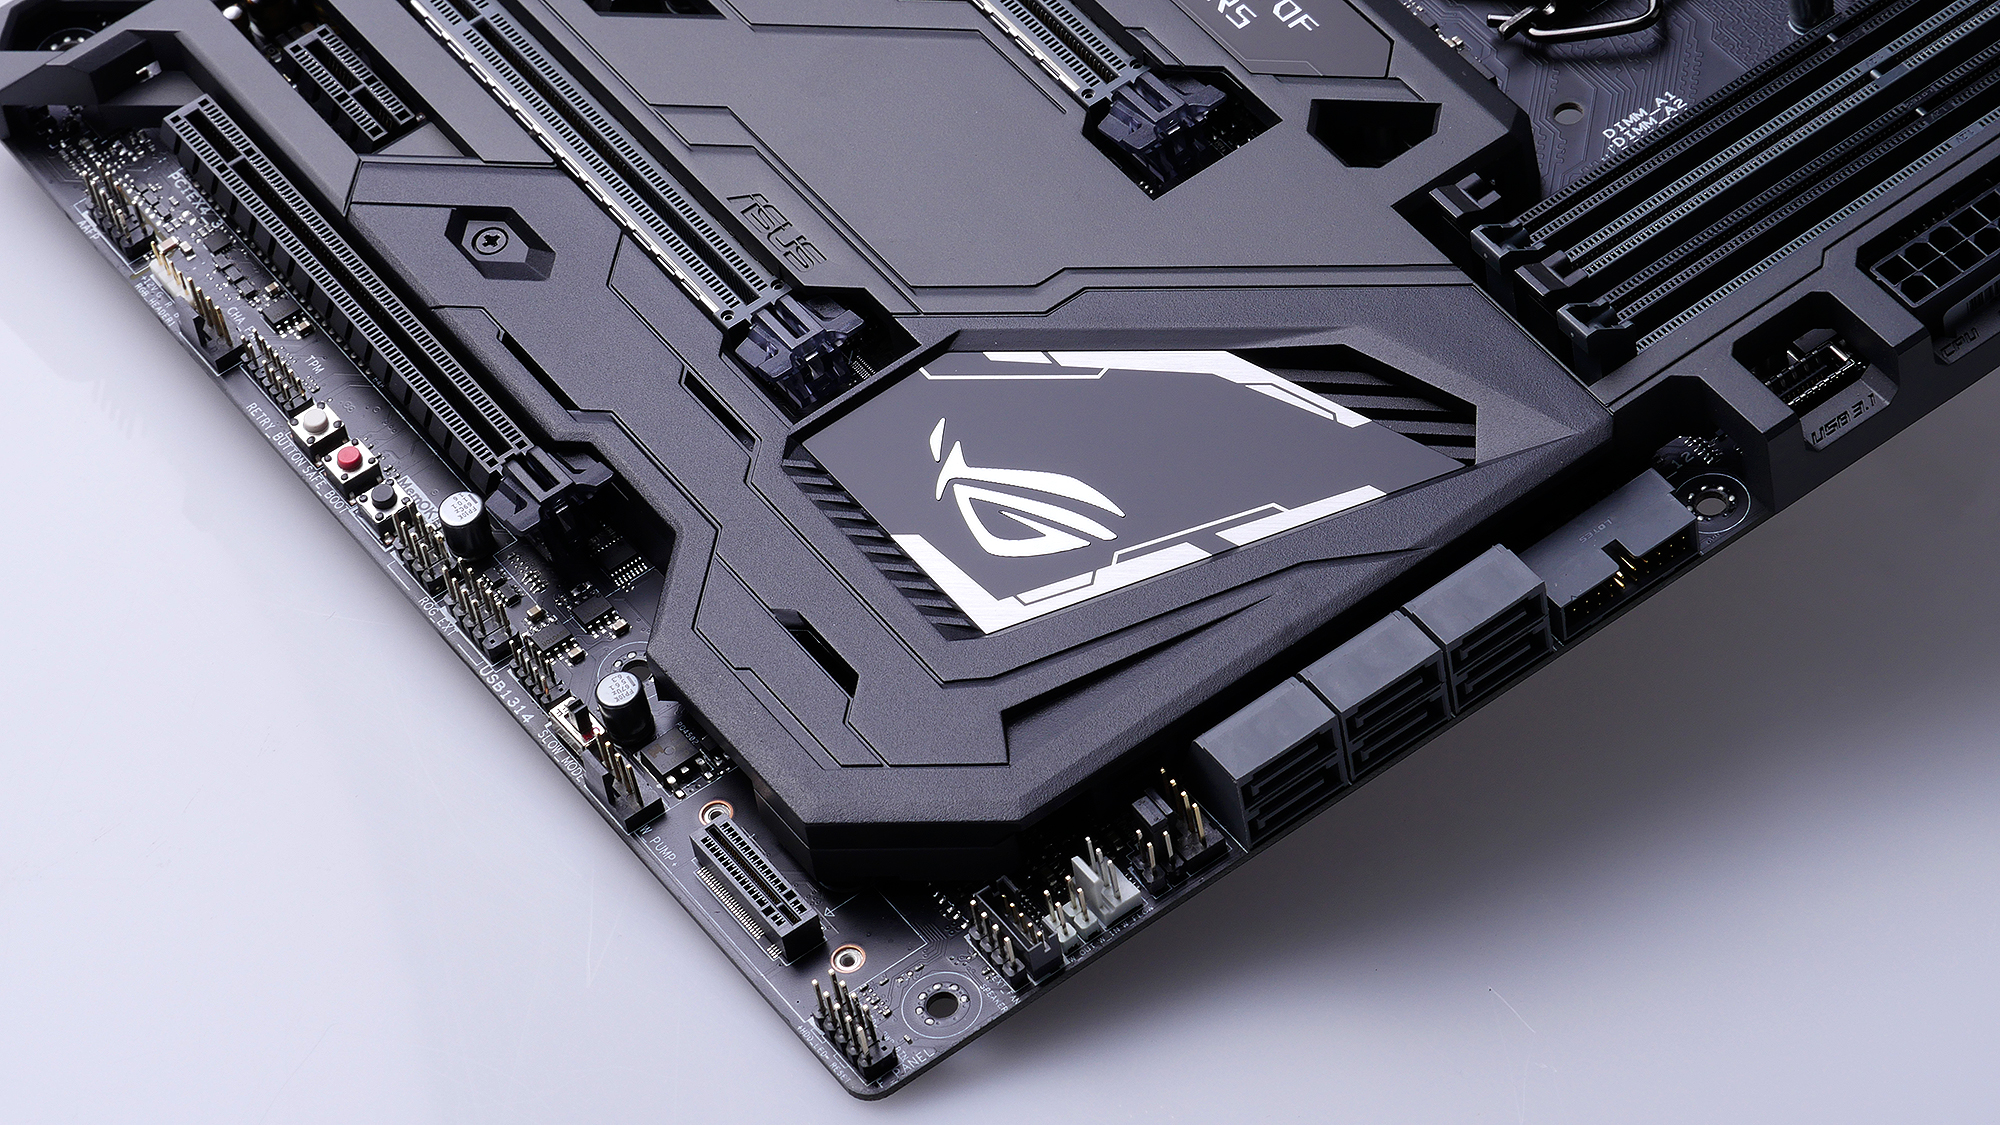 How to install two M 2 SSDs in RAID 0 on Maximus IX Motherboards